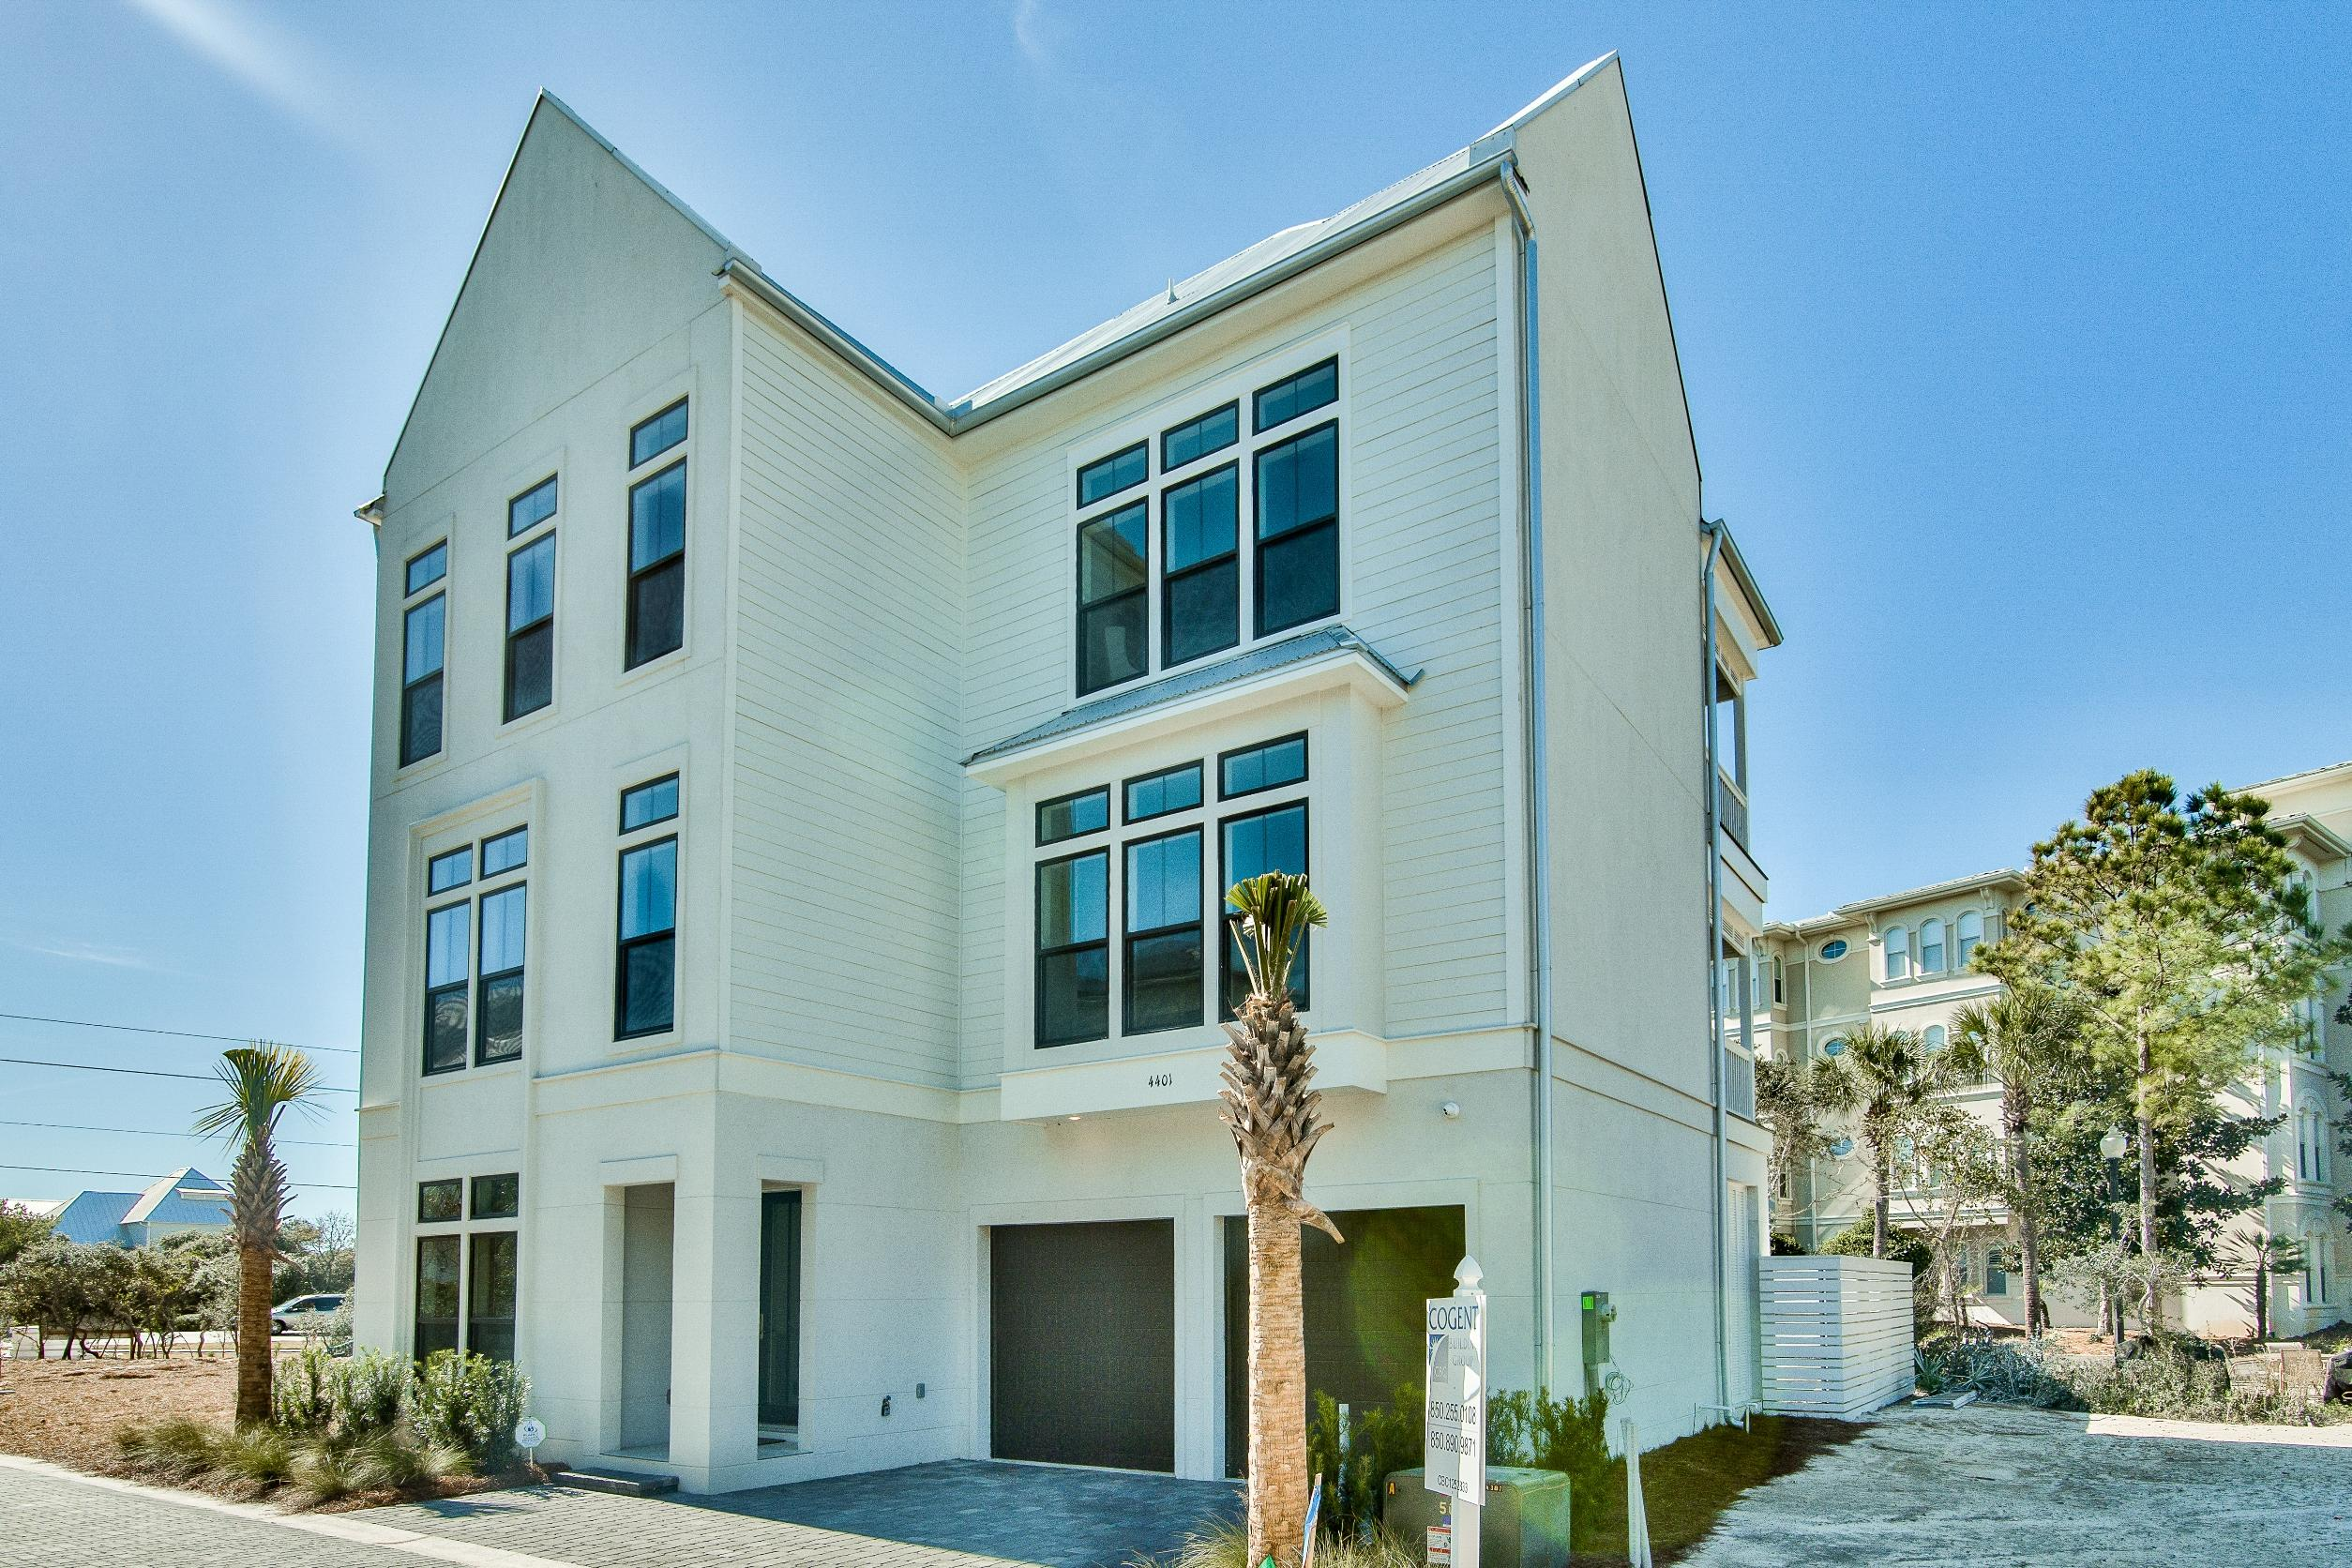 NEW CONSTRUCTION OPPORTUNITY IN SEAGROVE BEACH WITH DEEDED BEACH ACCESS.  Be the first to own the first of seven four-story Beach Villas in this fabulous new development in Seagrove Beach...SEAGROVE EAST.  Each unit boasts a 4th Floor Terrace offering gulf views, two car garage and private pool w/patio.  HOME FEATURES:  Four Stories/Total Living Space 4,224 Square Feet (3,100 H/C)  - Open Fourth Floor Balcony (271 SqFt) - Two Car Garage - Ground Floor Screened in Porch & Covered Porch - Elevator Access to first three levels - Four Bedrooms with Four Full Baths and Two Half Baths - Master located on Third Floor and opens to Covered Porch - Living Area located on Second Floor with Living Room - Opening to Covered Porch - Luxury Appliances Package.  Call today to schedule your appointment.